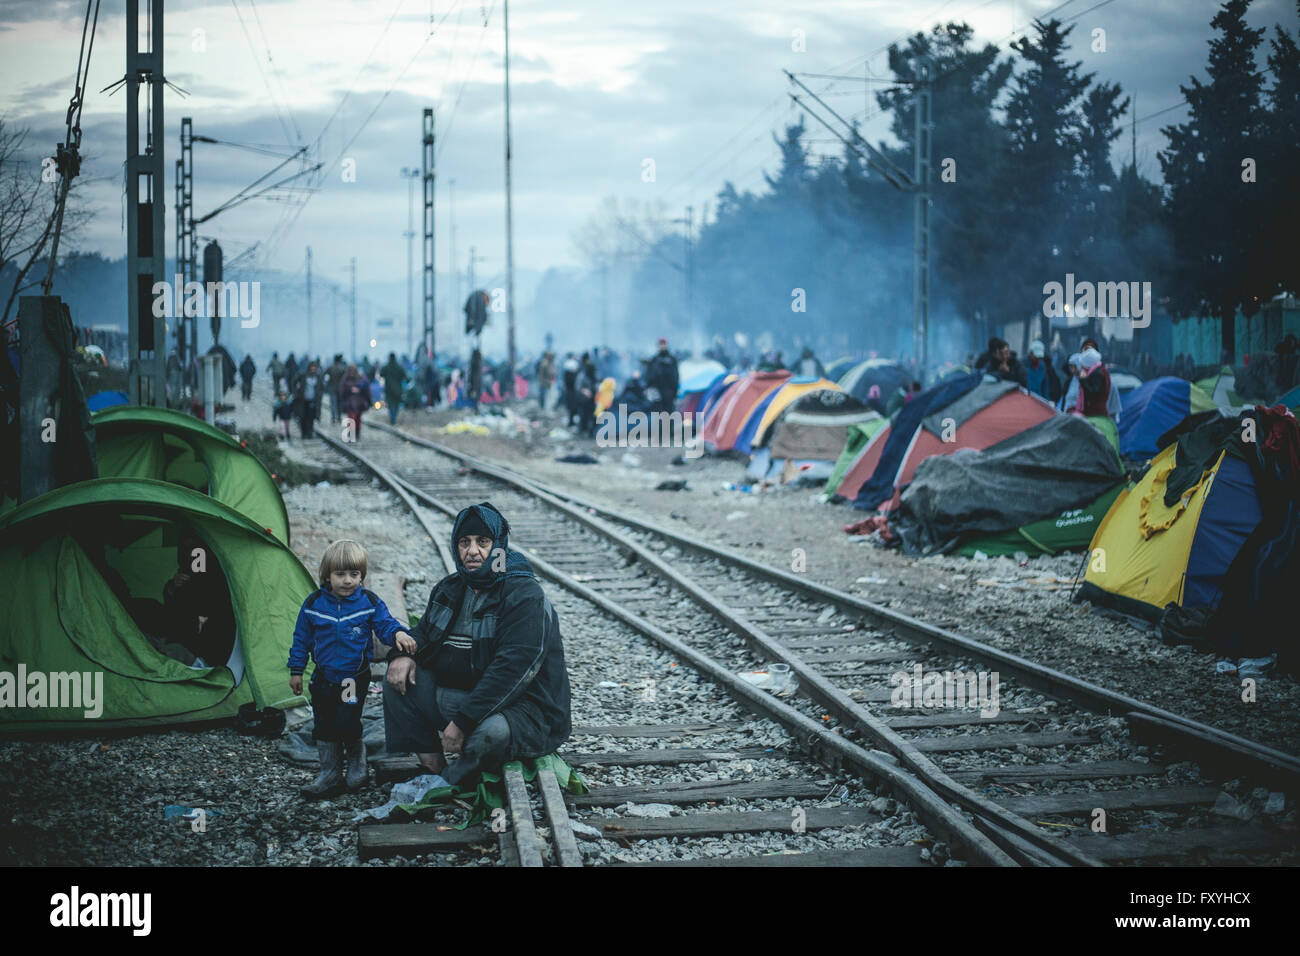 Camp with refugees on the train tracks, refugee camp in Idomeni, border with Macedonia, Greece - Stock Image